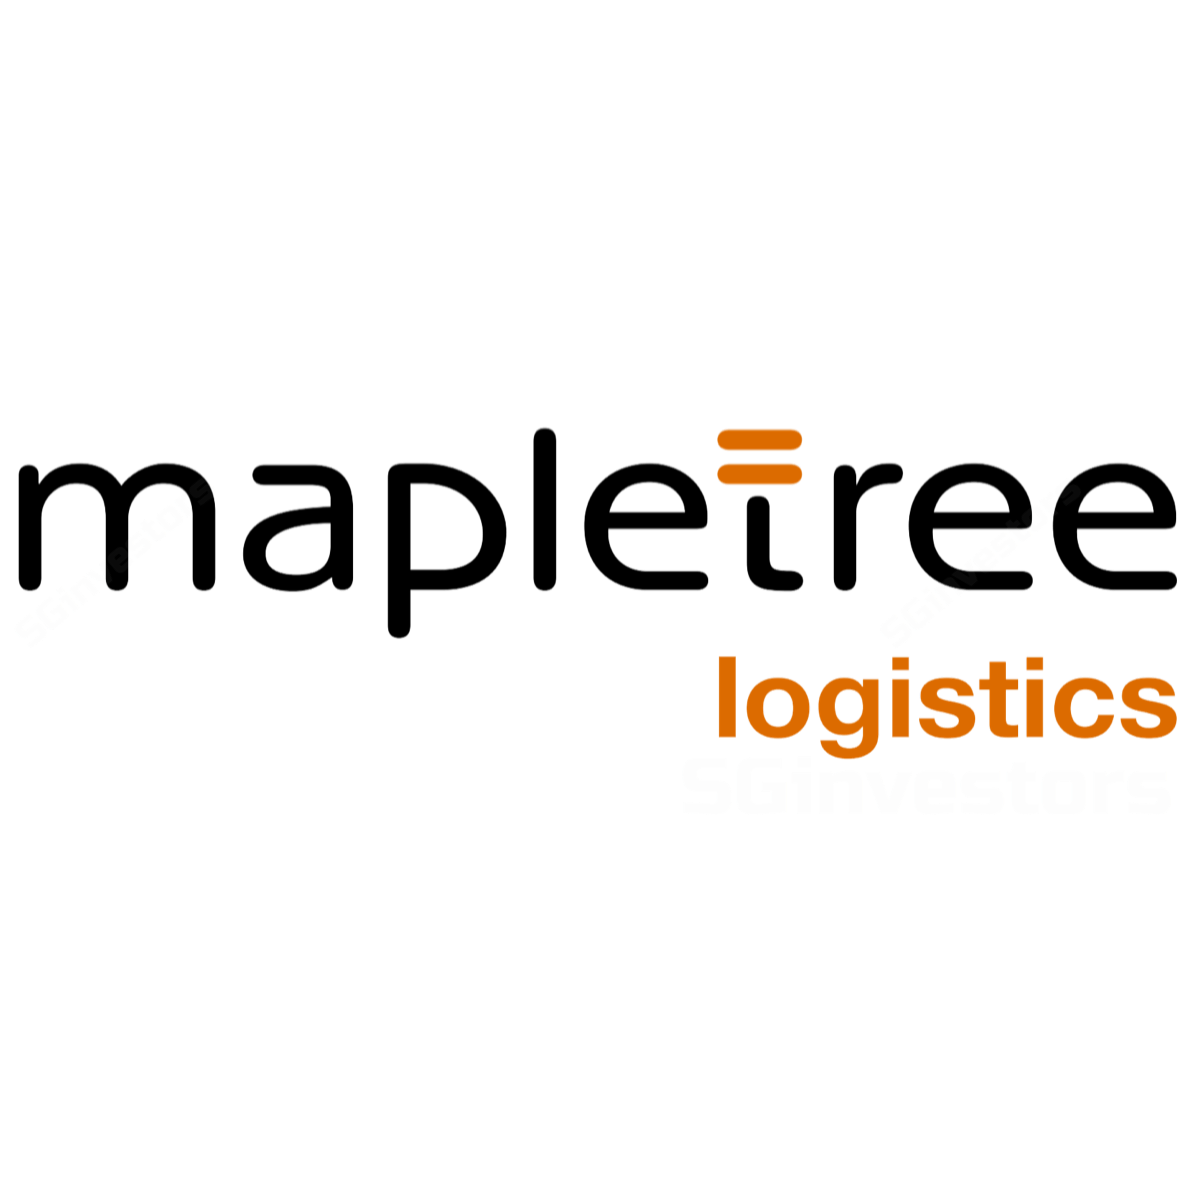 Mapletree Logistics Trust - DBS Group Research Research 2018-07-24: Continues To Shine